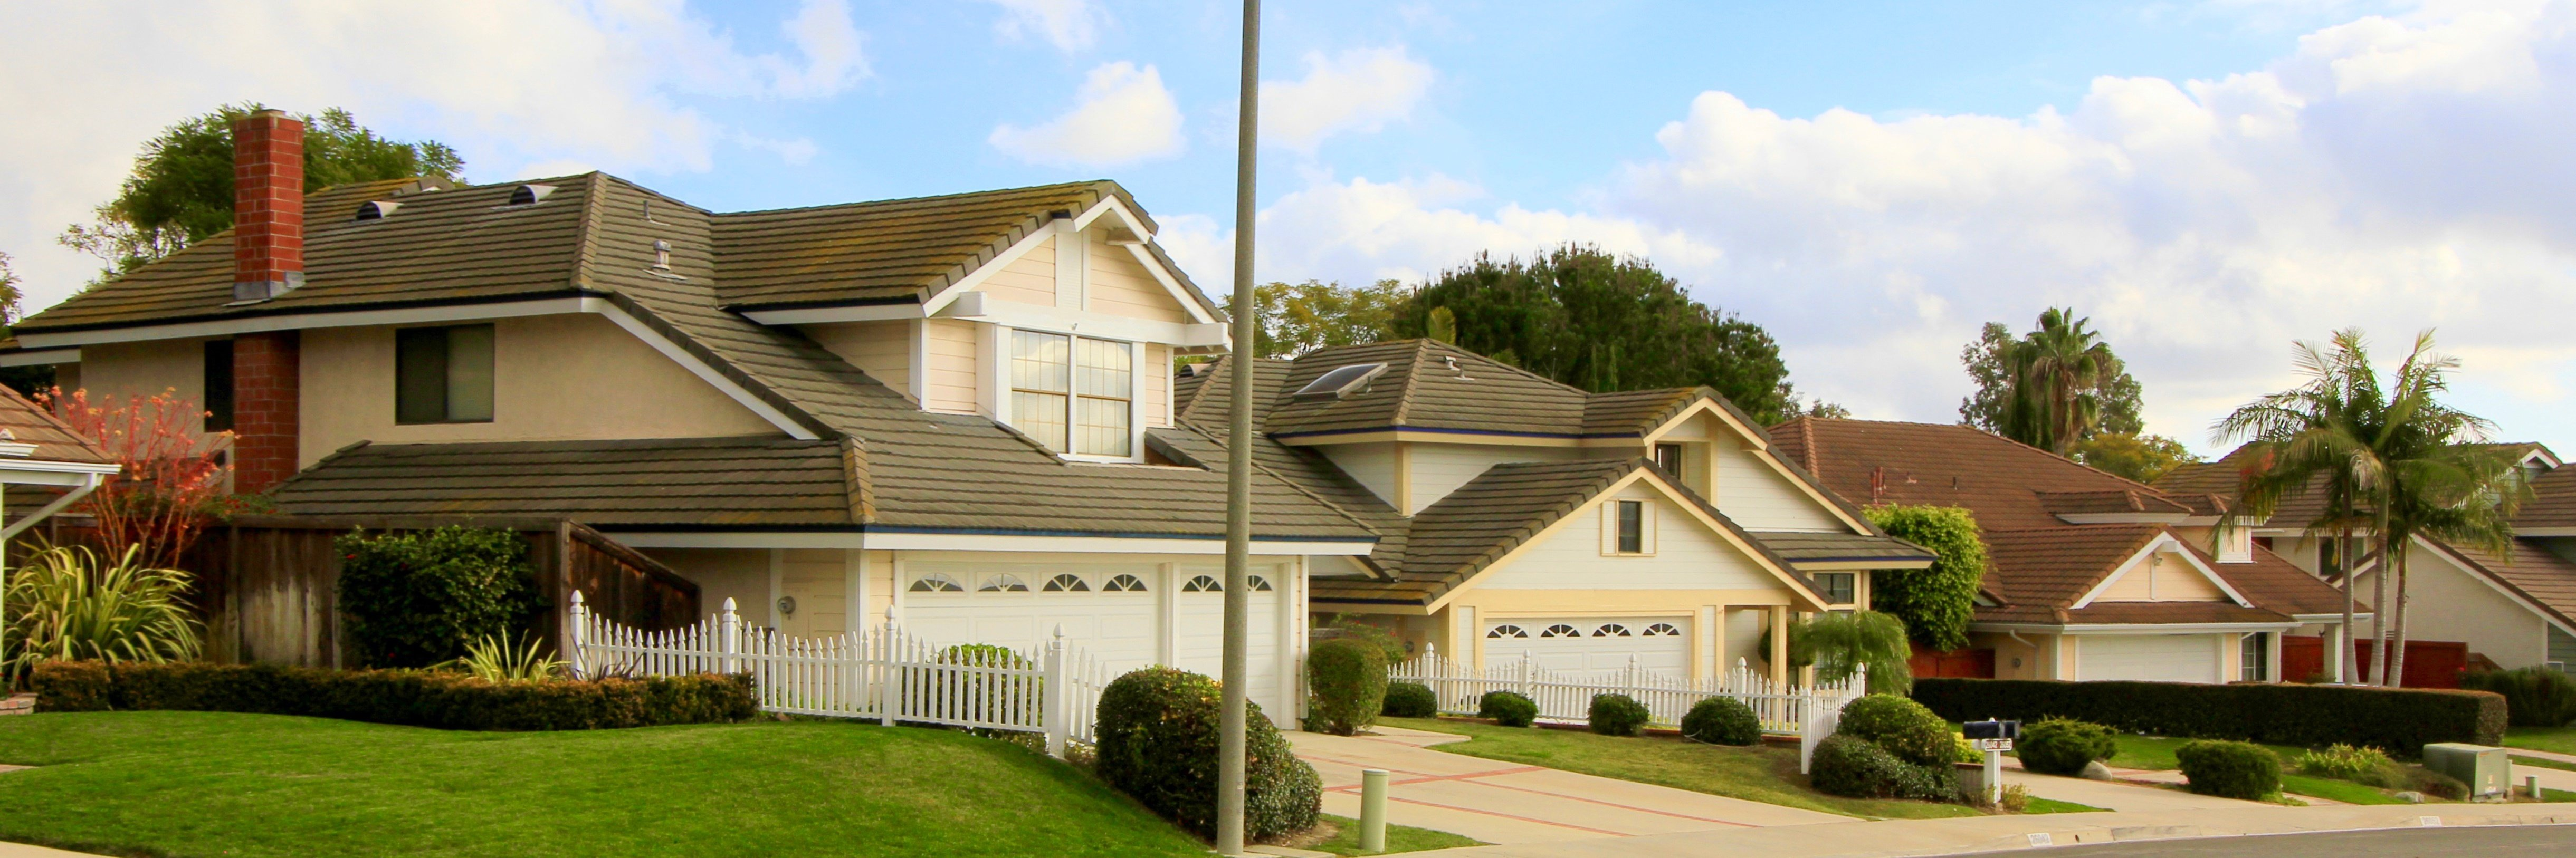 Stratford Ridge is a community located within the city of Laguna Hills, CA